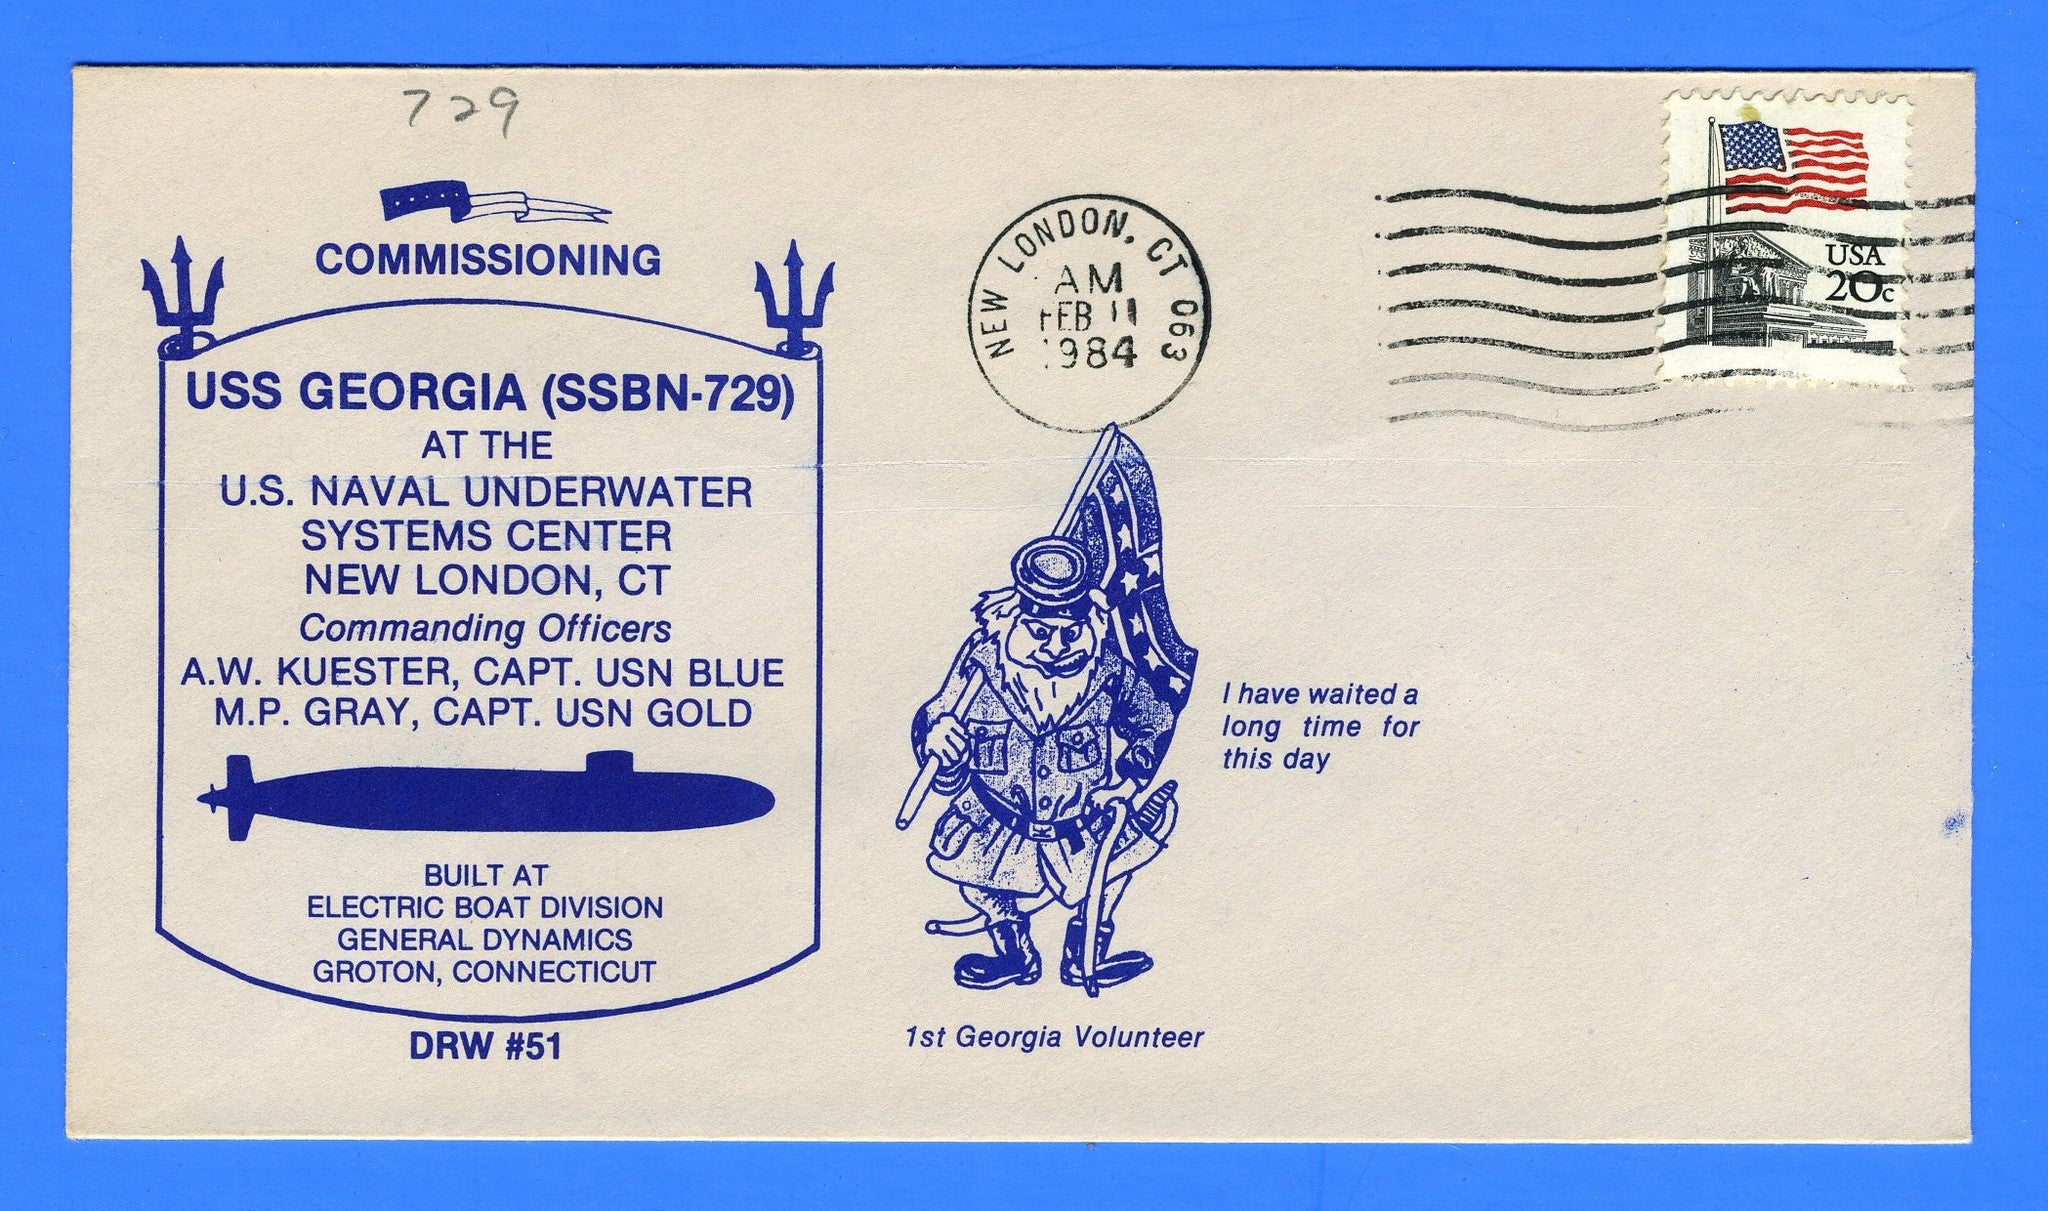 USS Georgia SSBN-729 Commissioning February 11, 1984 - Cachet by DRW No. 51